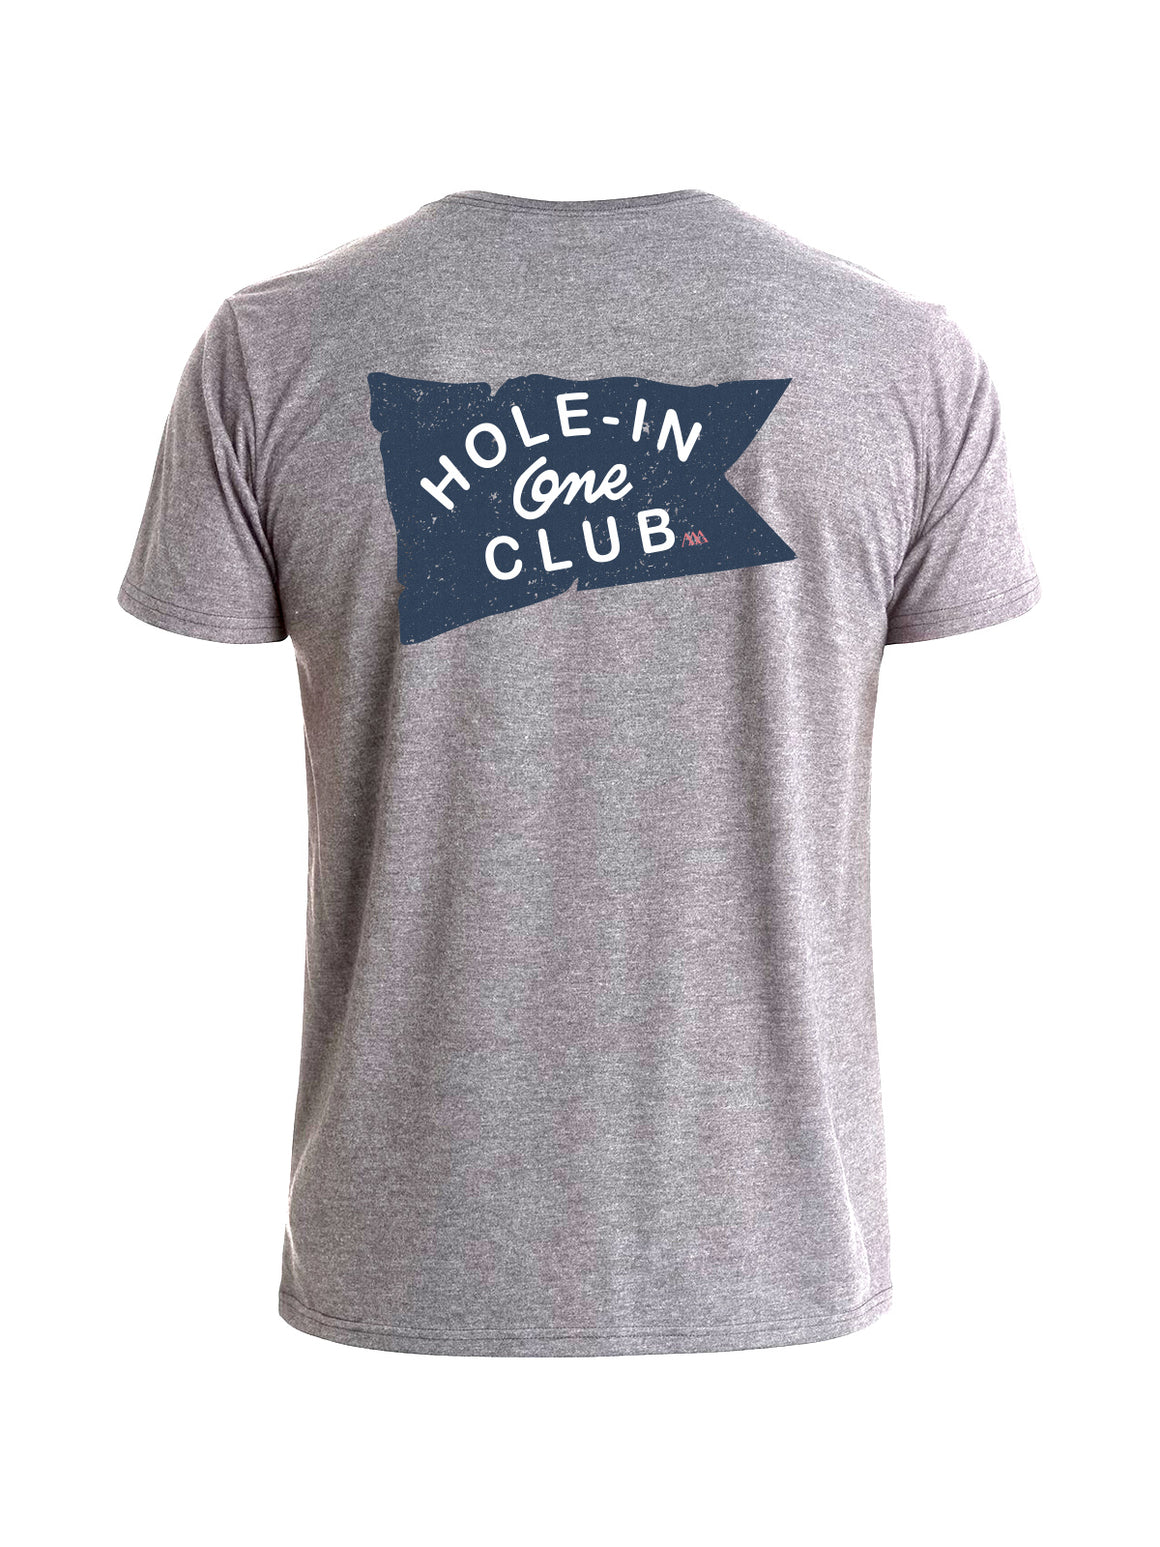 Hole-In-One Club Tee Shirt - Sea Salt Heather